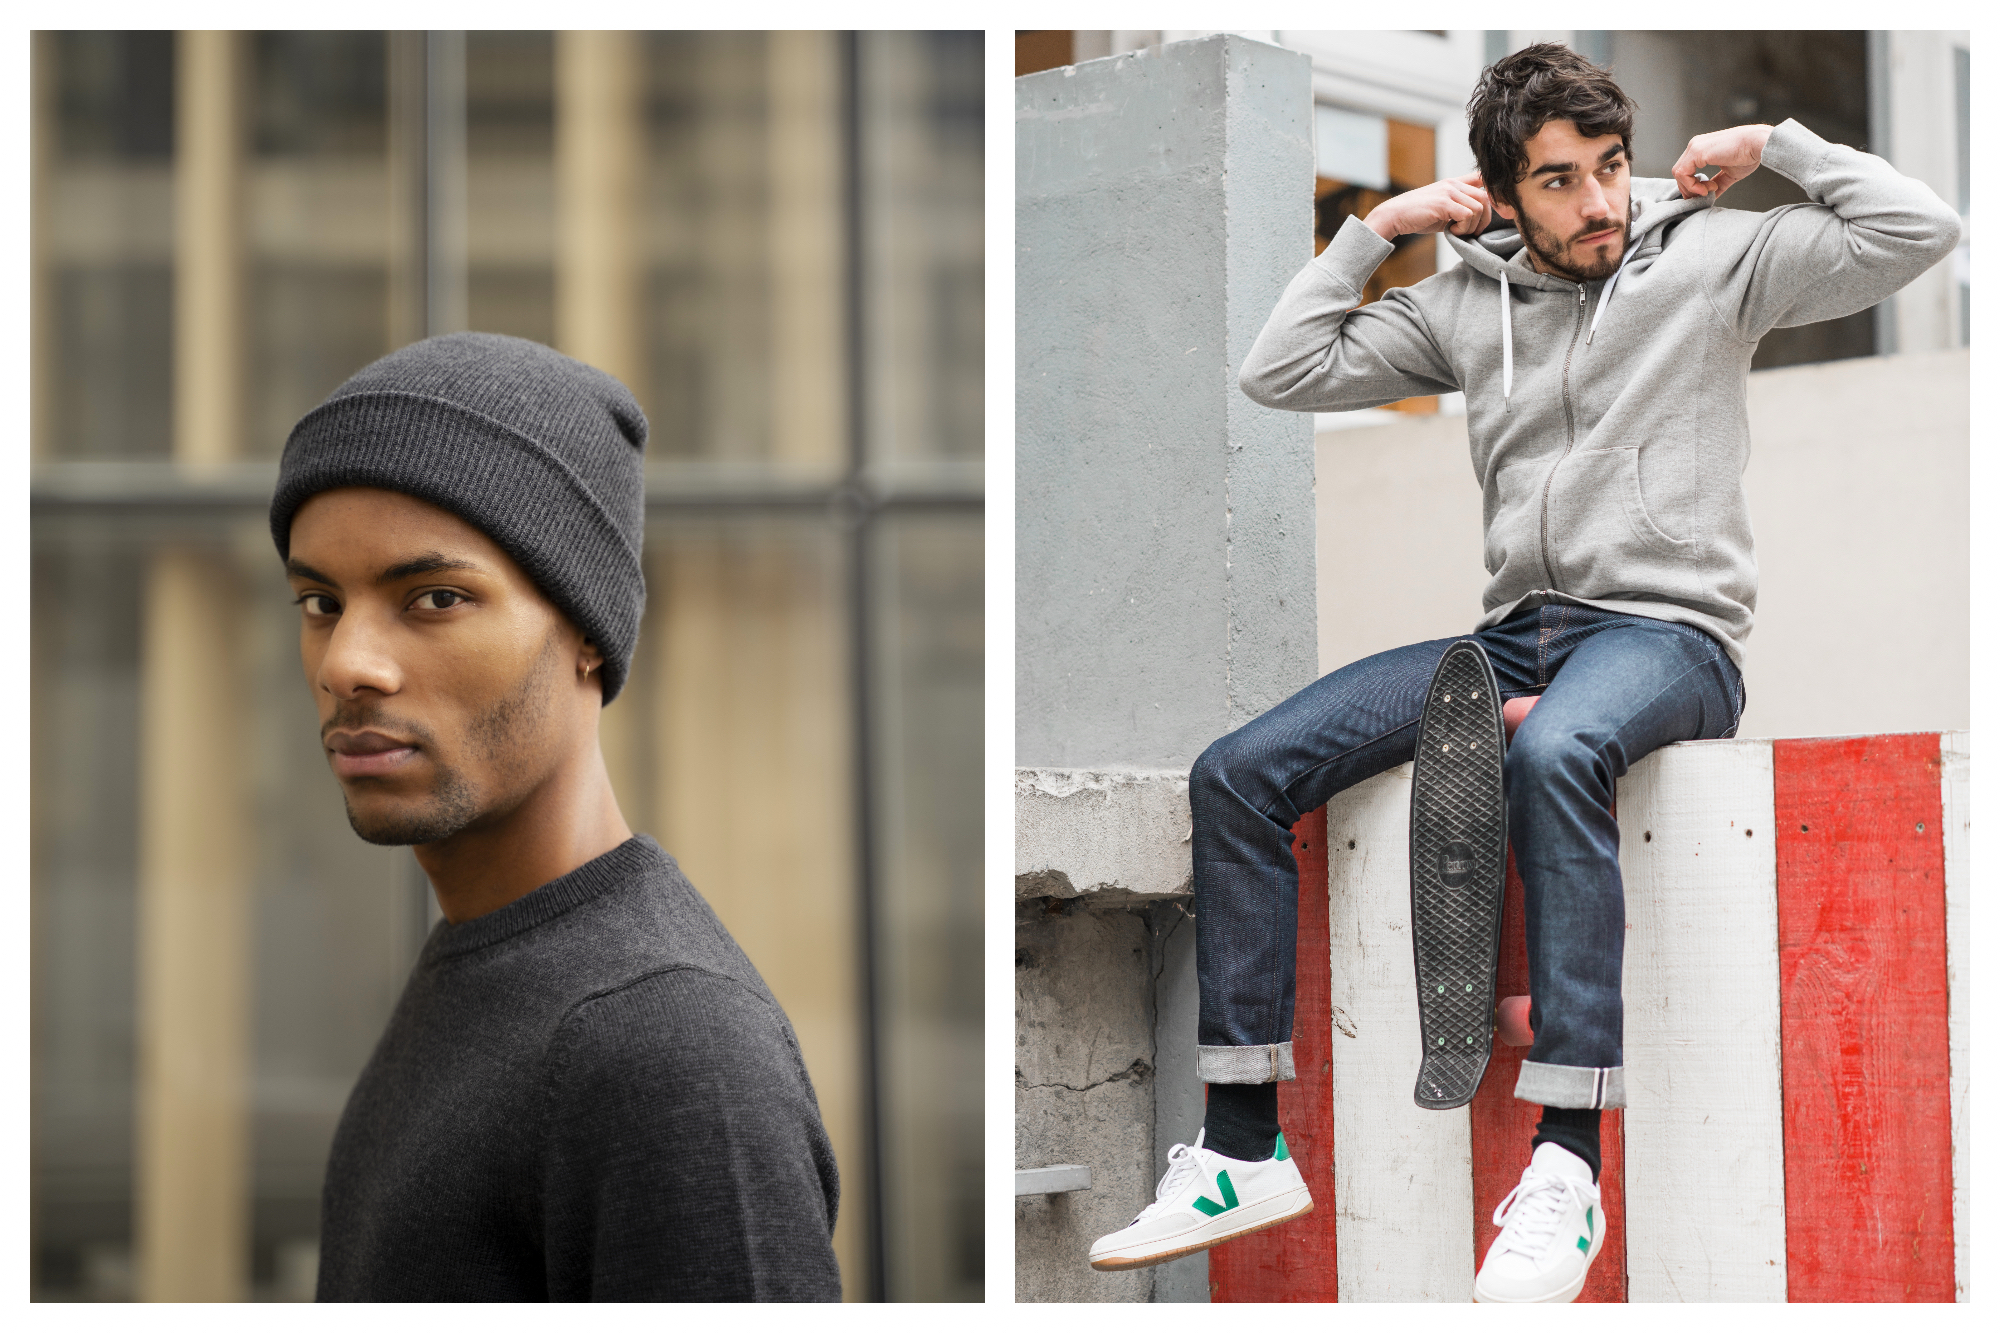 On left, a male model sports a ribbed, dark-grey beanie and a sweater from the ethical French fashion brand Loom. On right, a male model sits on a red and white striped wall, skateboard between his legs, sporting cuffed jeans. He adjusts his grey hoodie, both from ethical French fashion brand Loom.